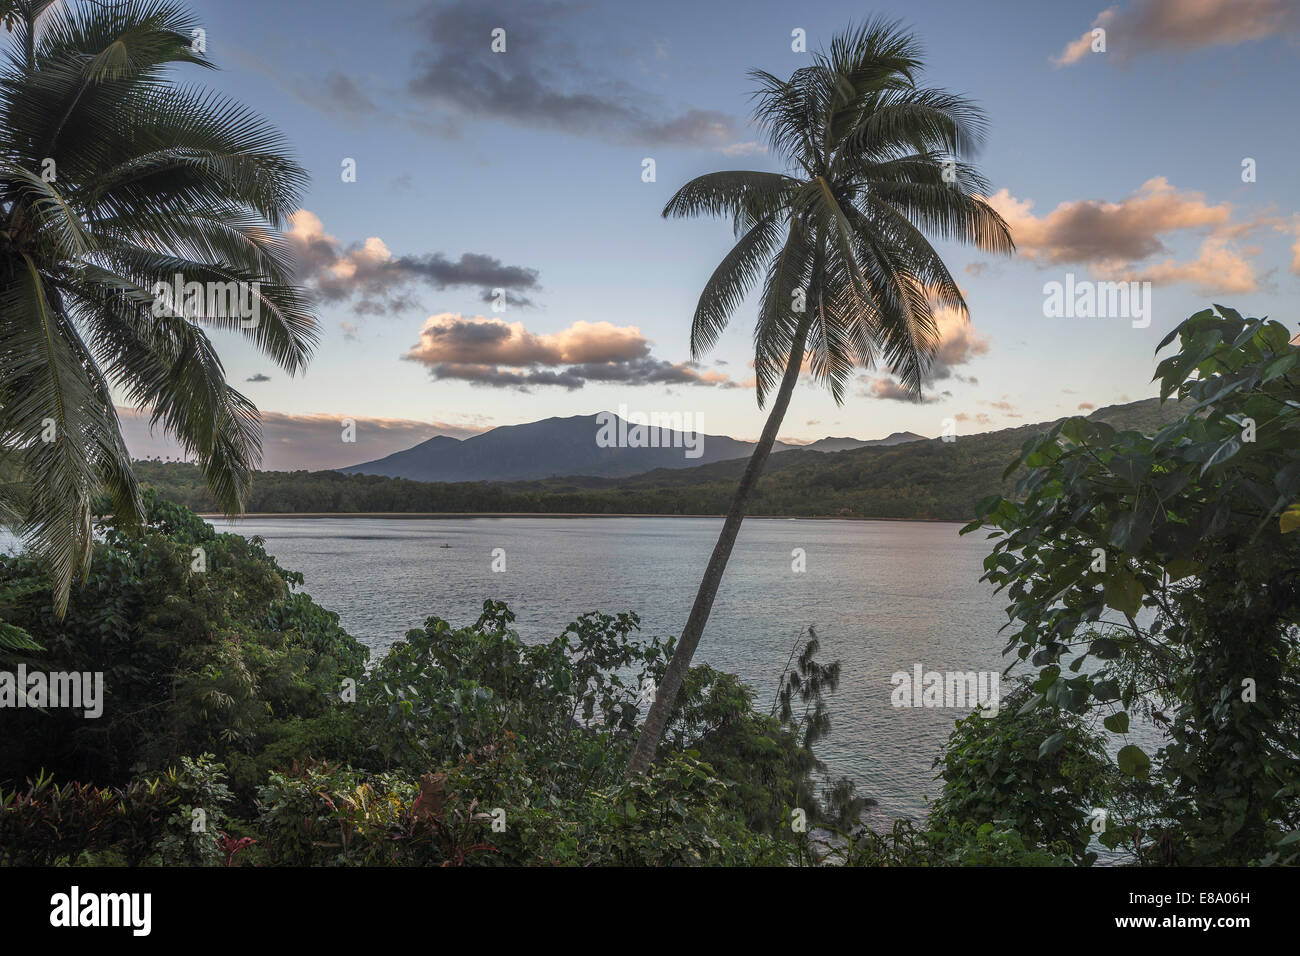 Palm trees off Port Resolution Bay, Tanna Island, Vanuatu - Stock Image